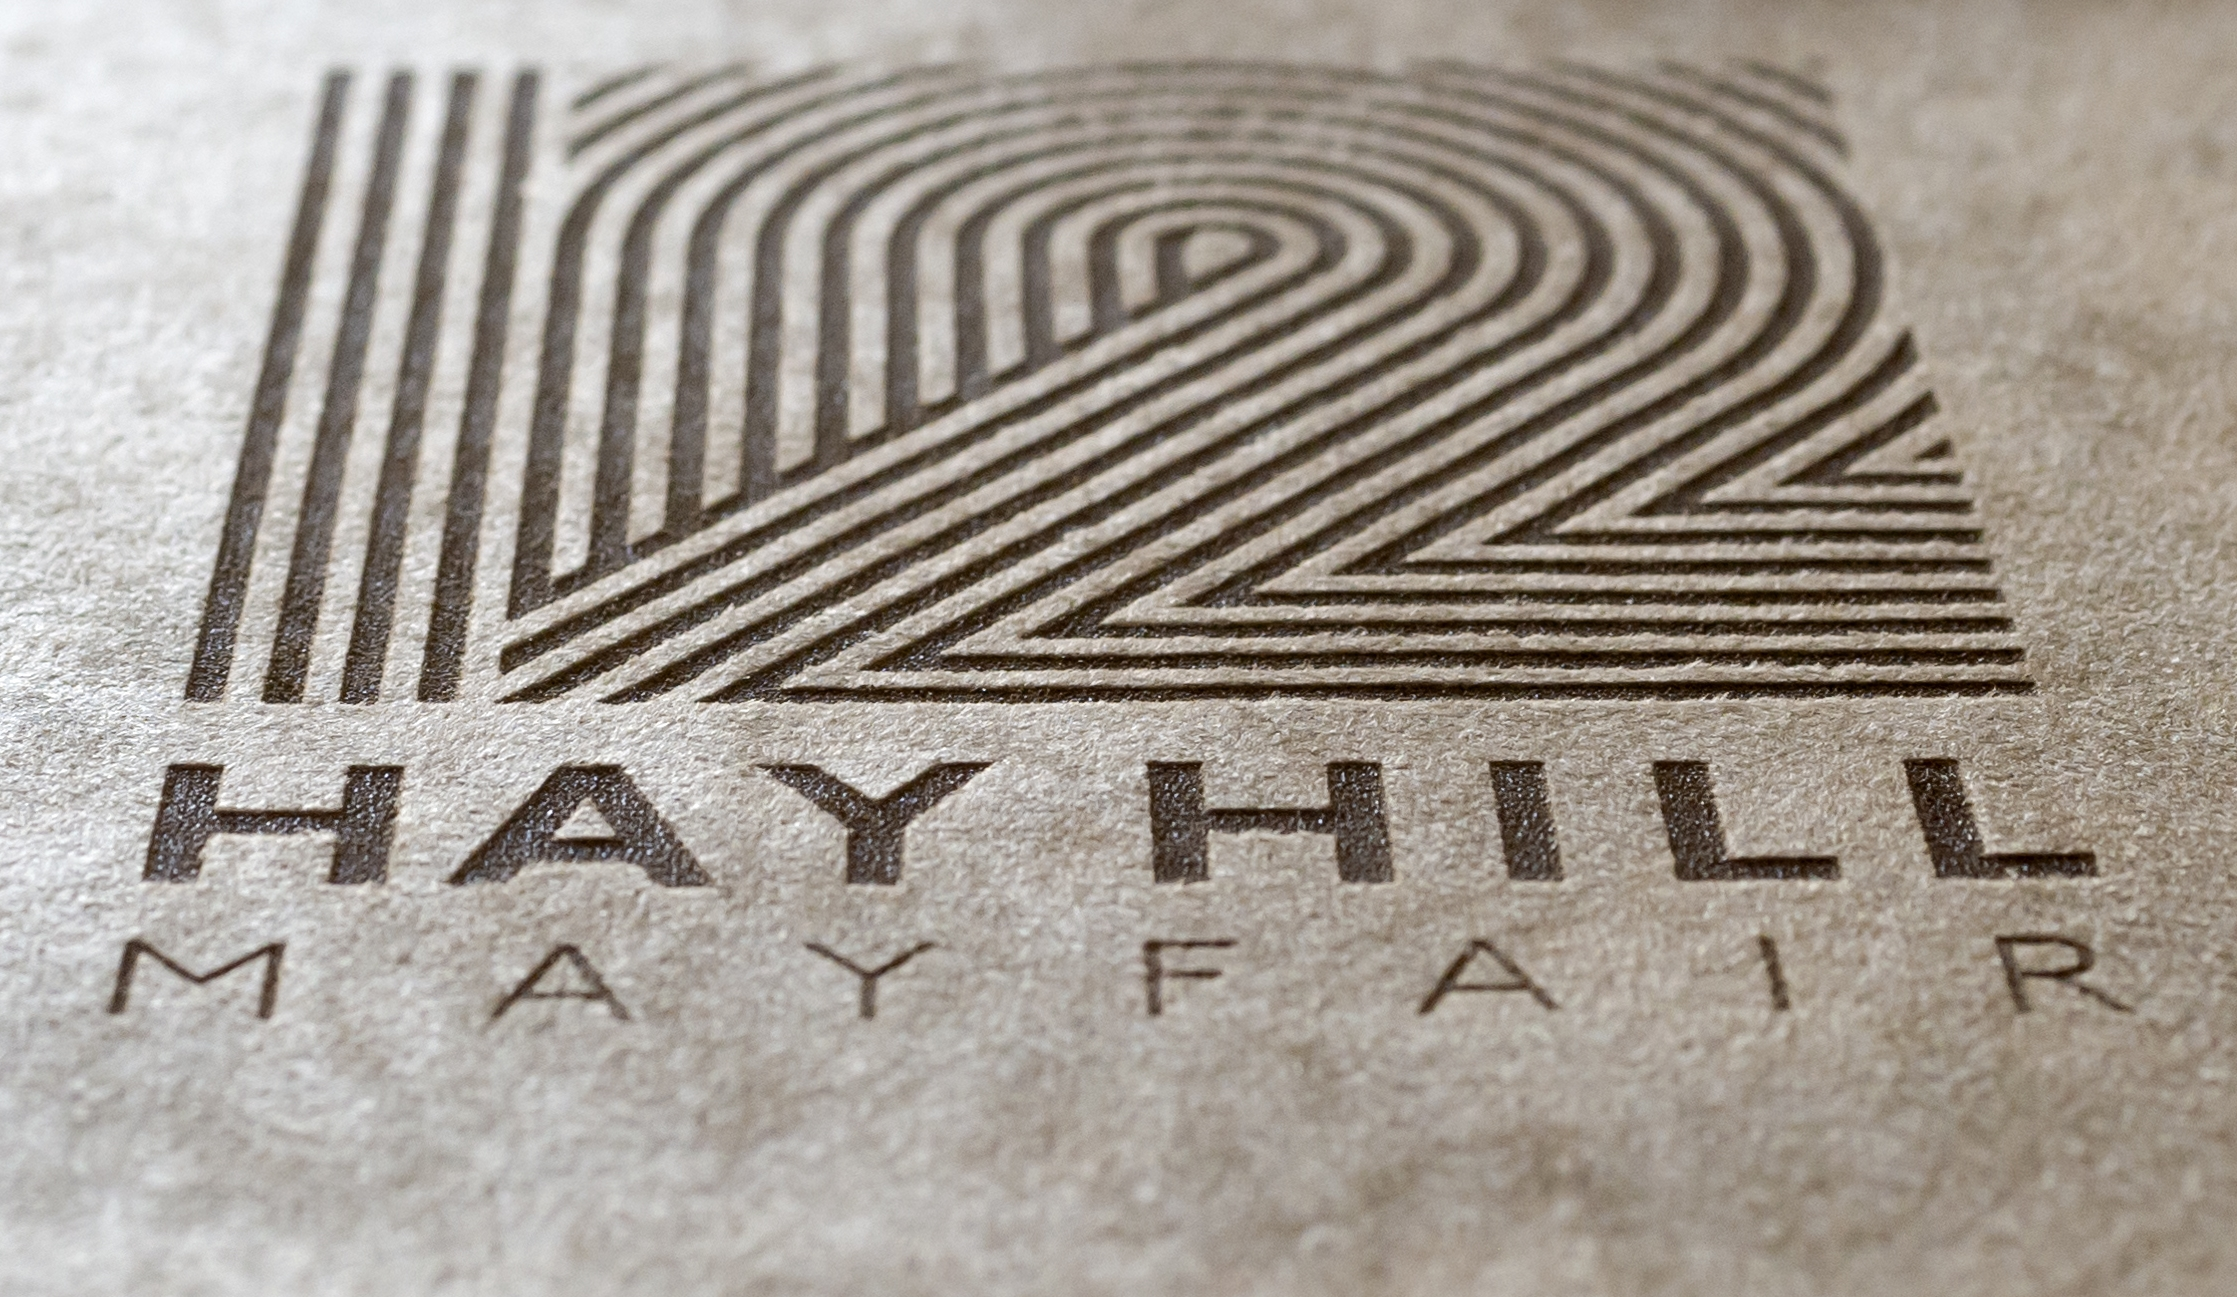 Laser engraved logo on a flip chart cover for 12 Hay Hill, Mayfair.